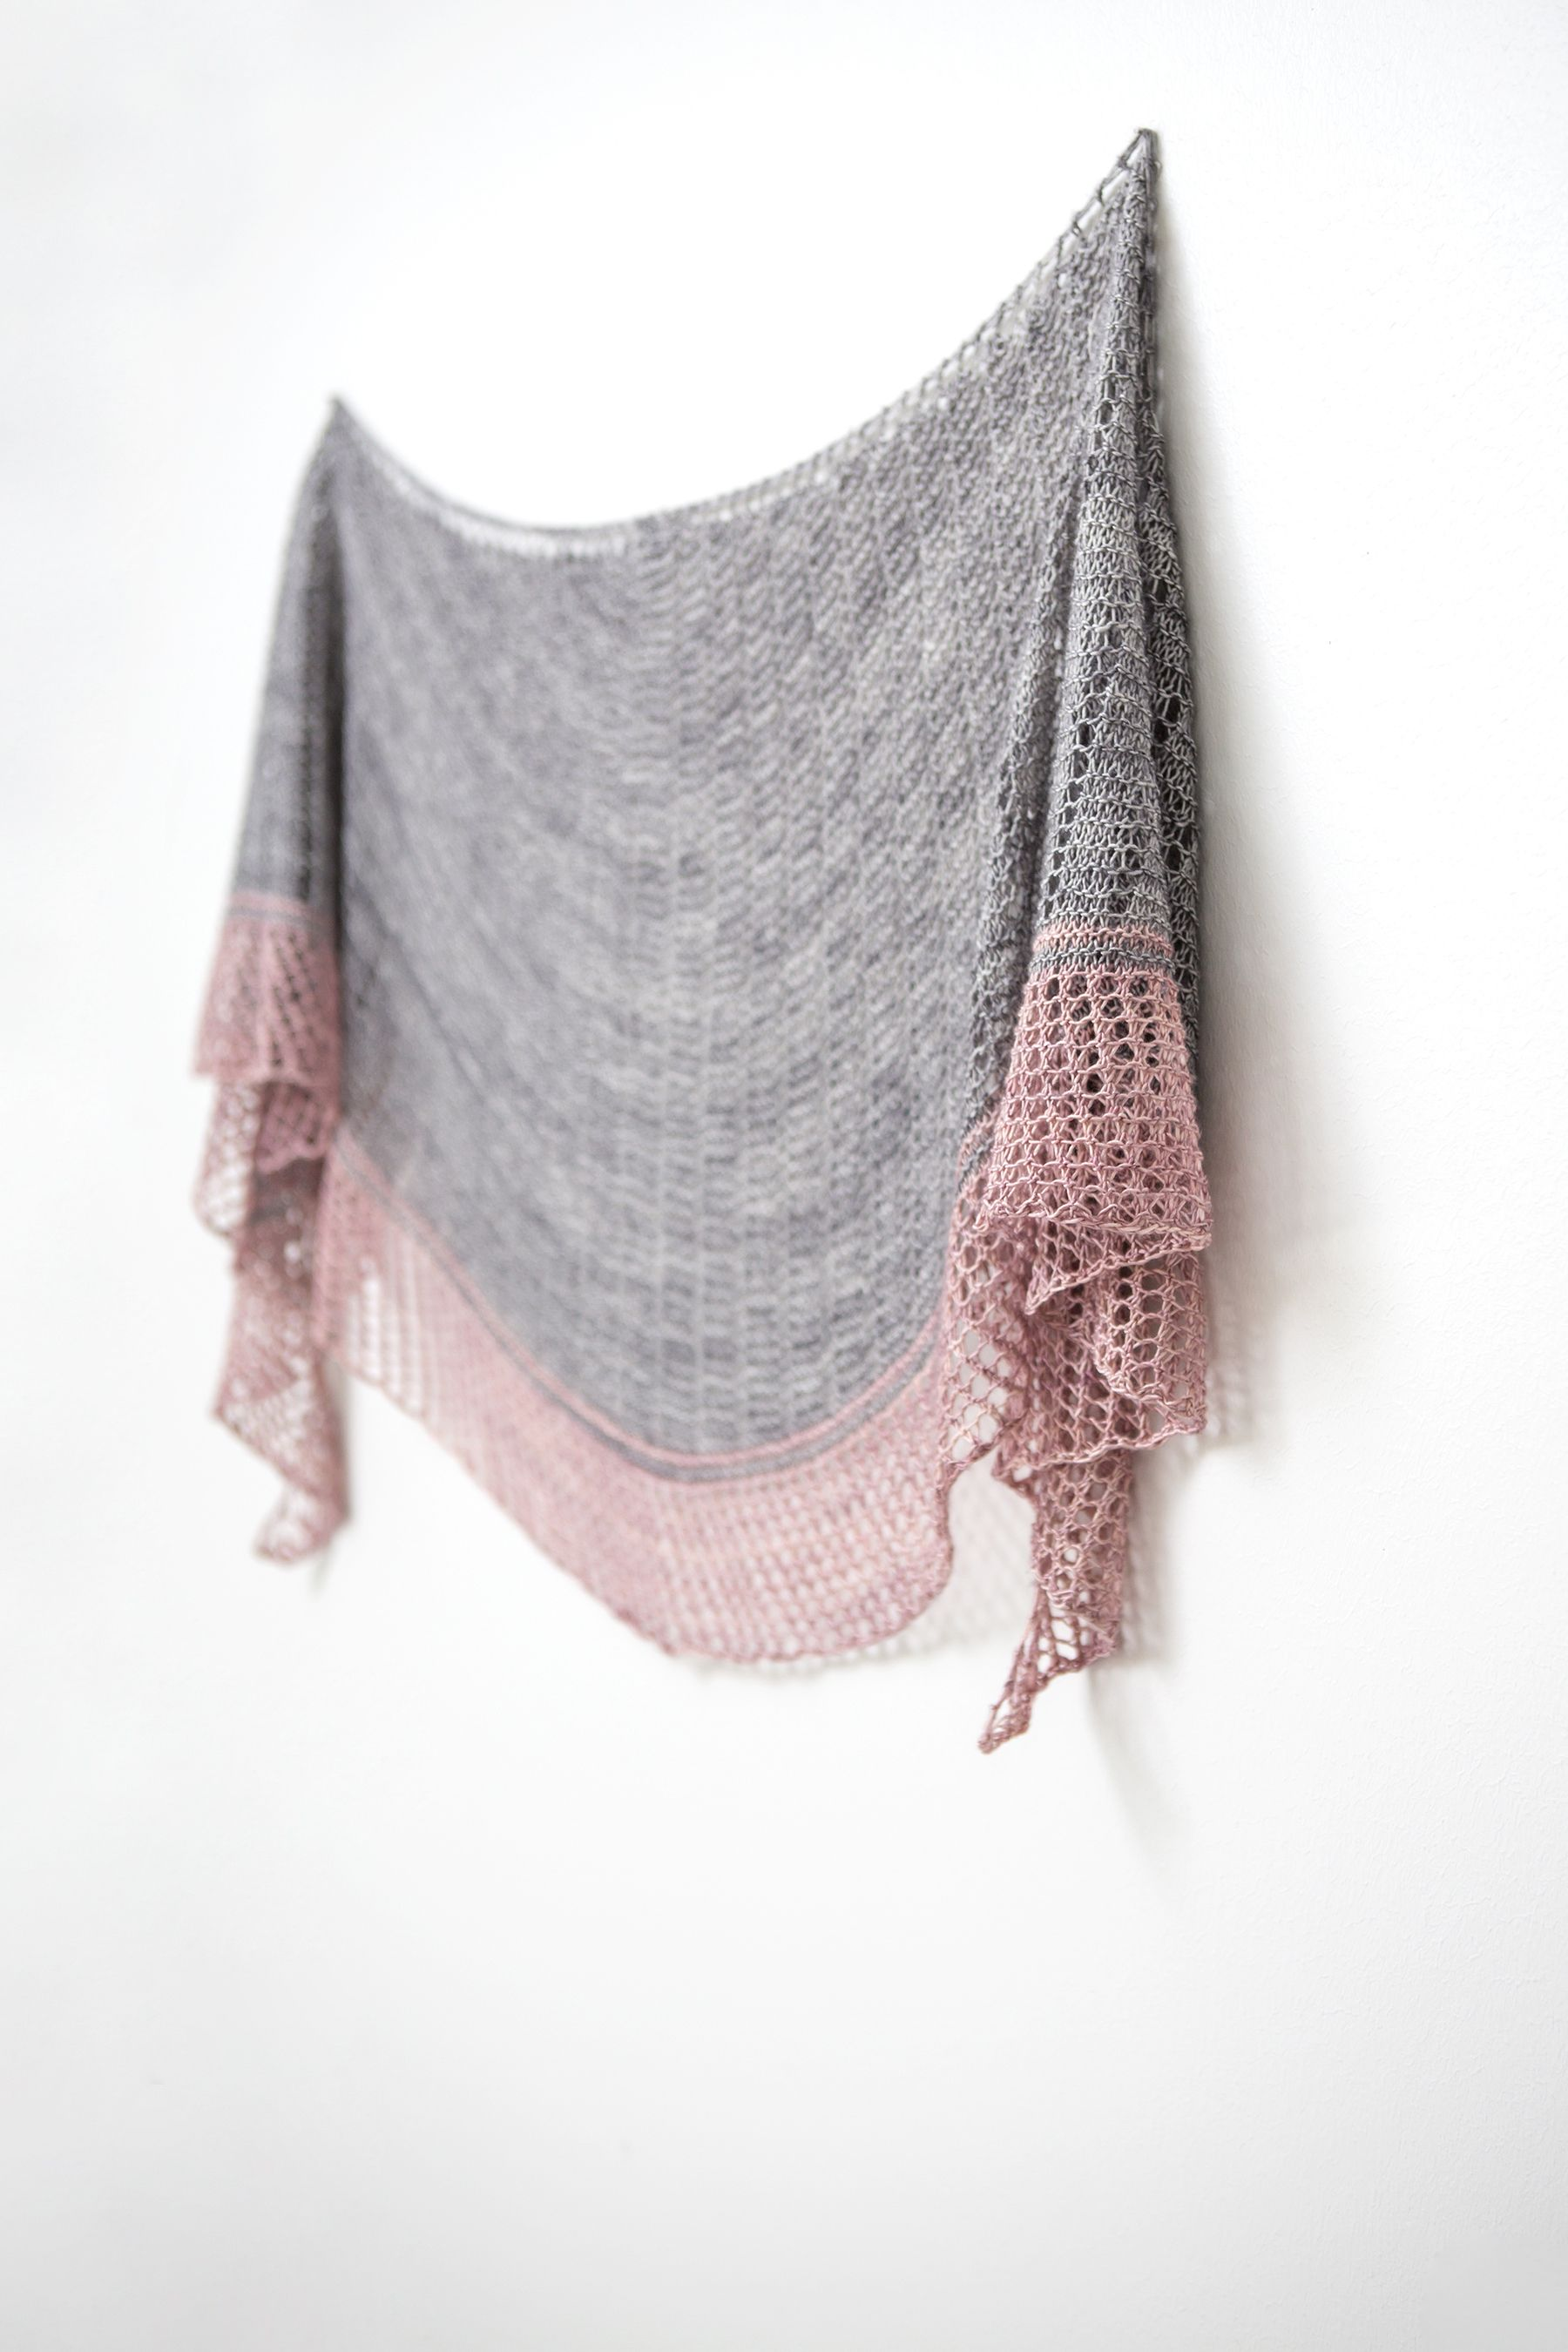 Lighthouse pattern by janina kallio knit patterns shawl and ravelry lighthouse pattern by janina kallio lace shawlsknitted bankloansurffo Image collections